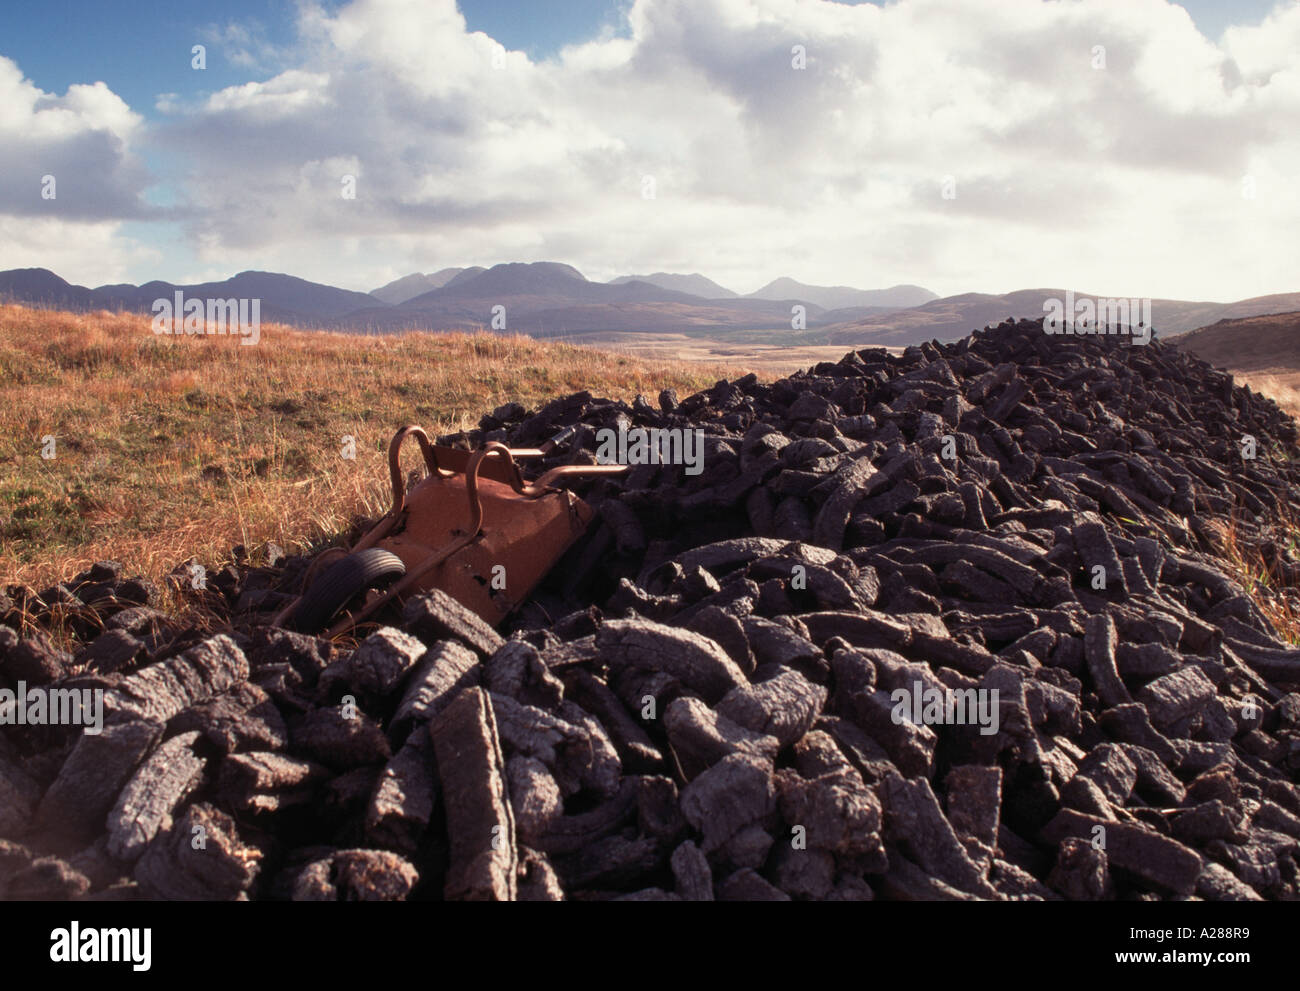 Upturned Wheel barrow on a pile of turf, Connemara, Galway, west of Ireland - Stock Image